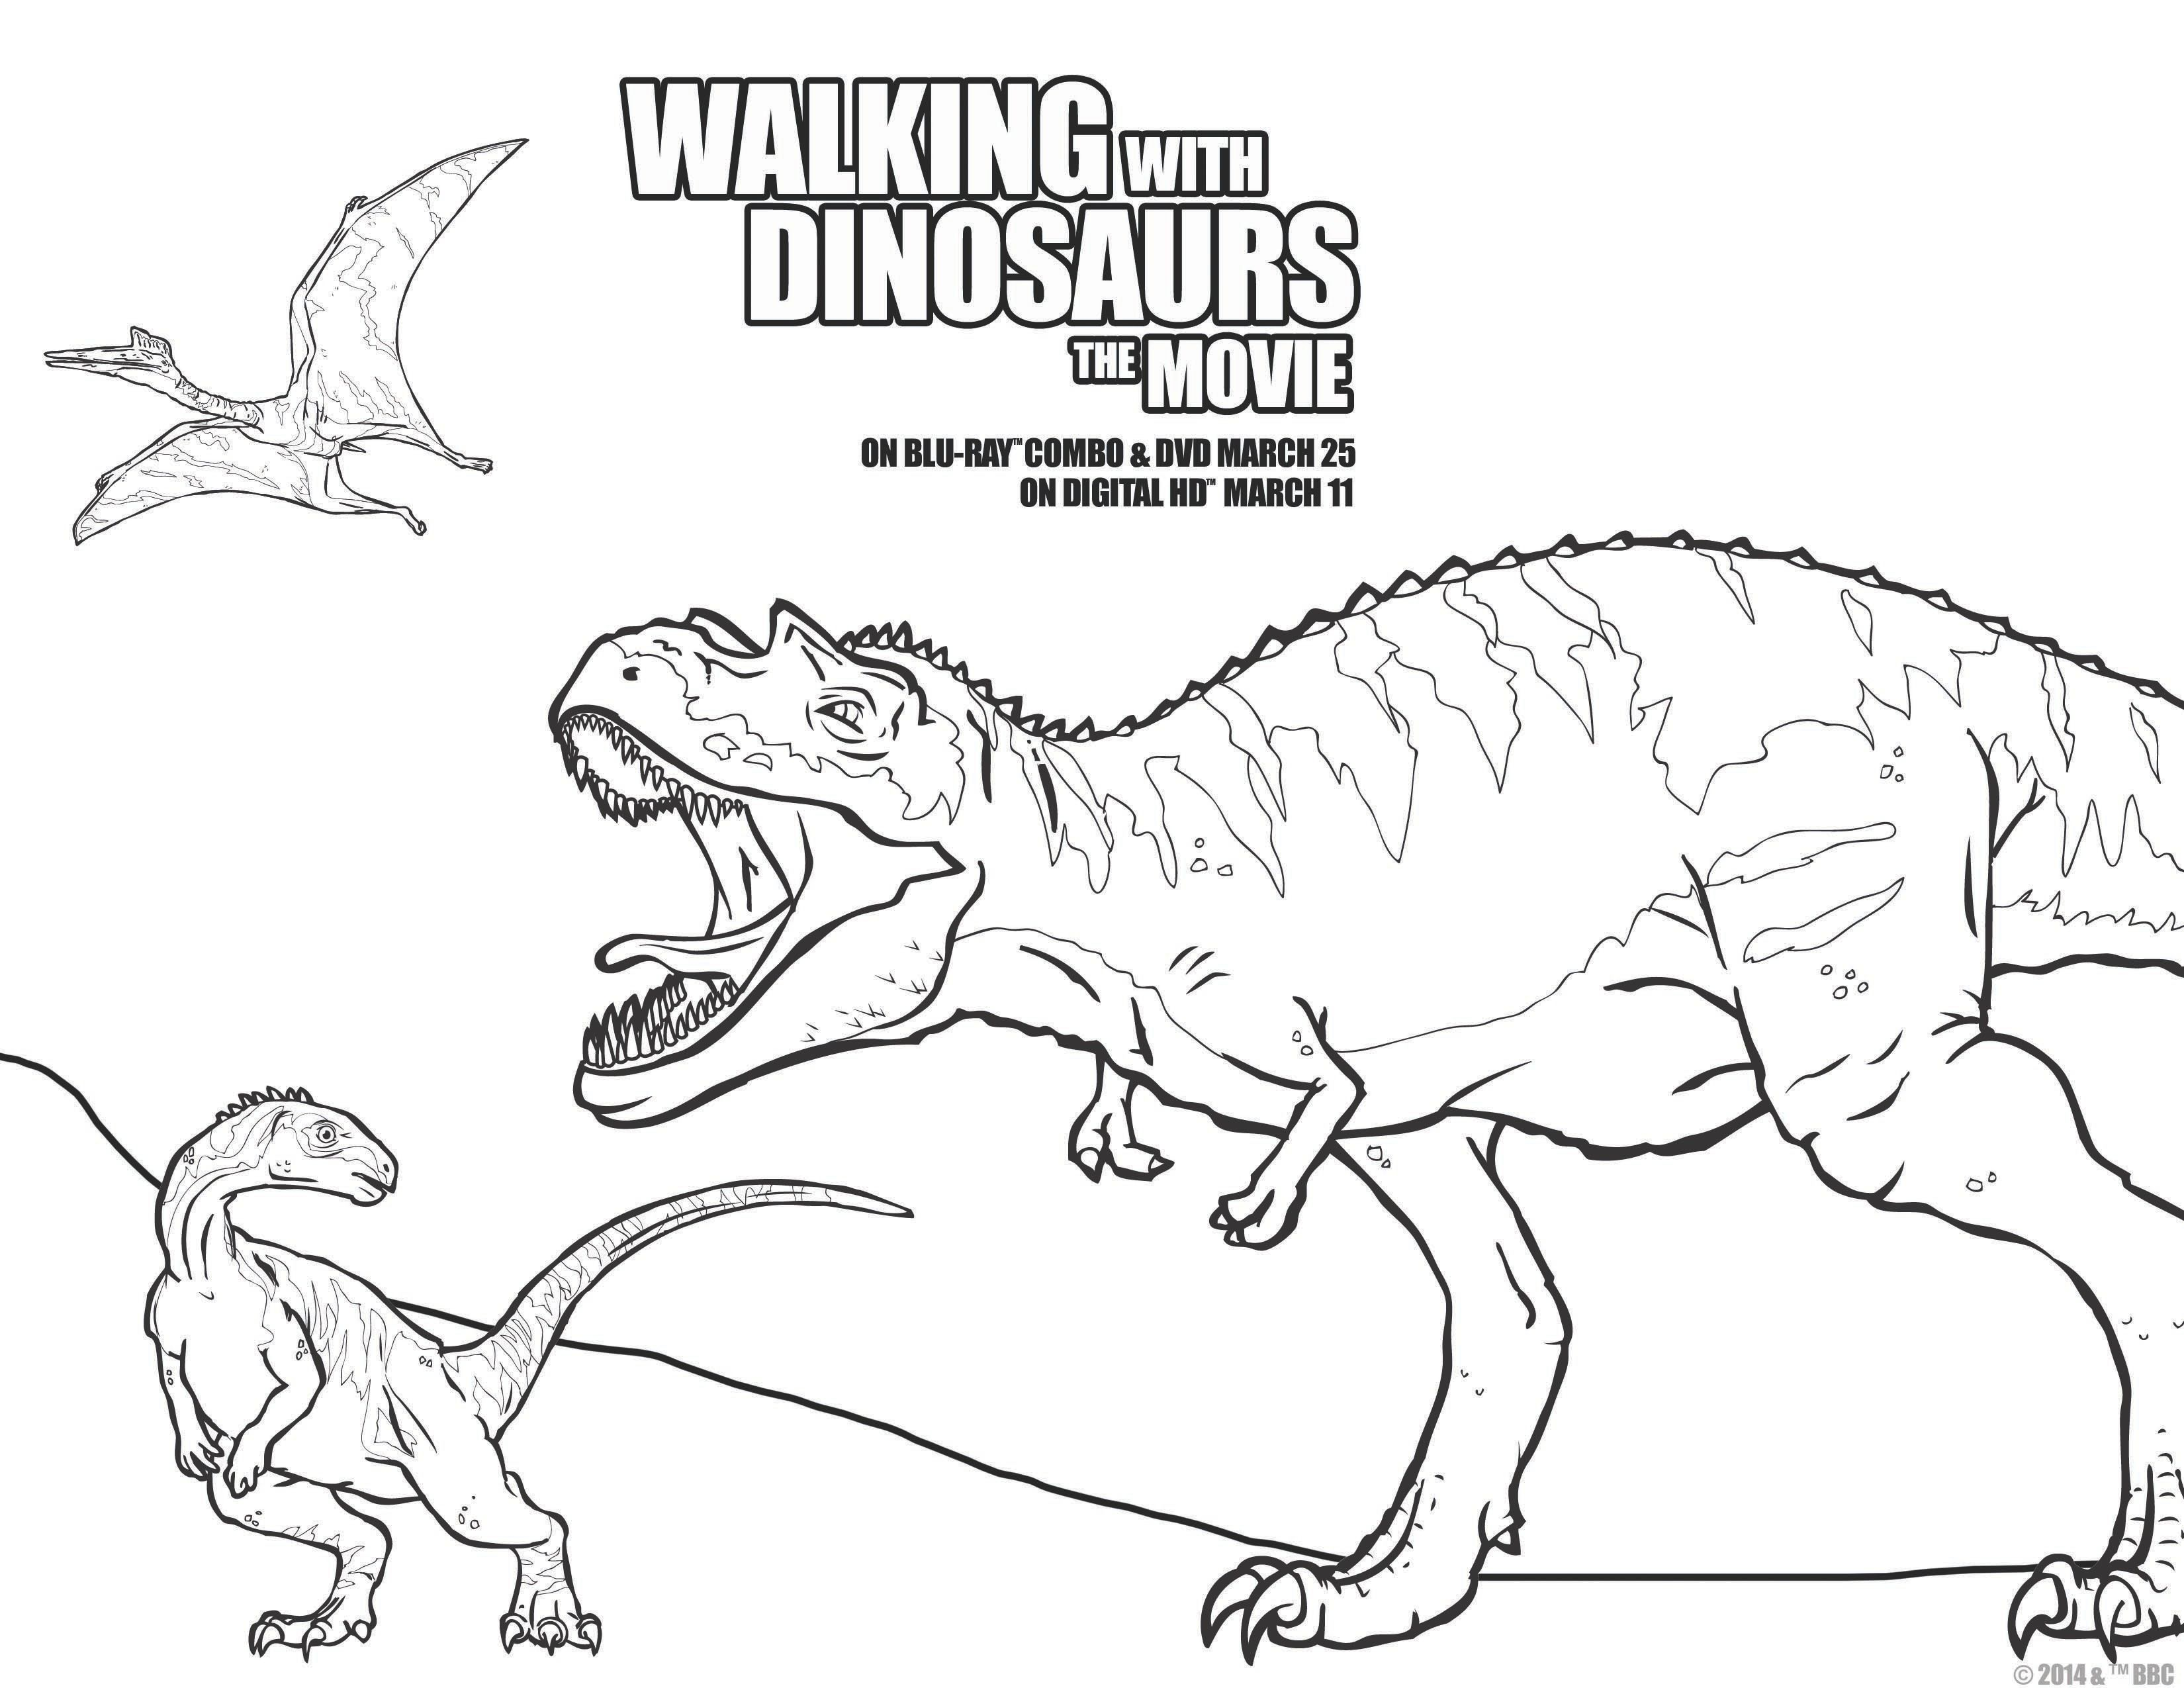 WalkingwithDinosDVD - Free Printable Walking With Dinosaurs The ...